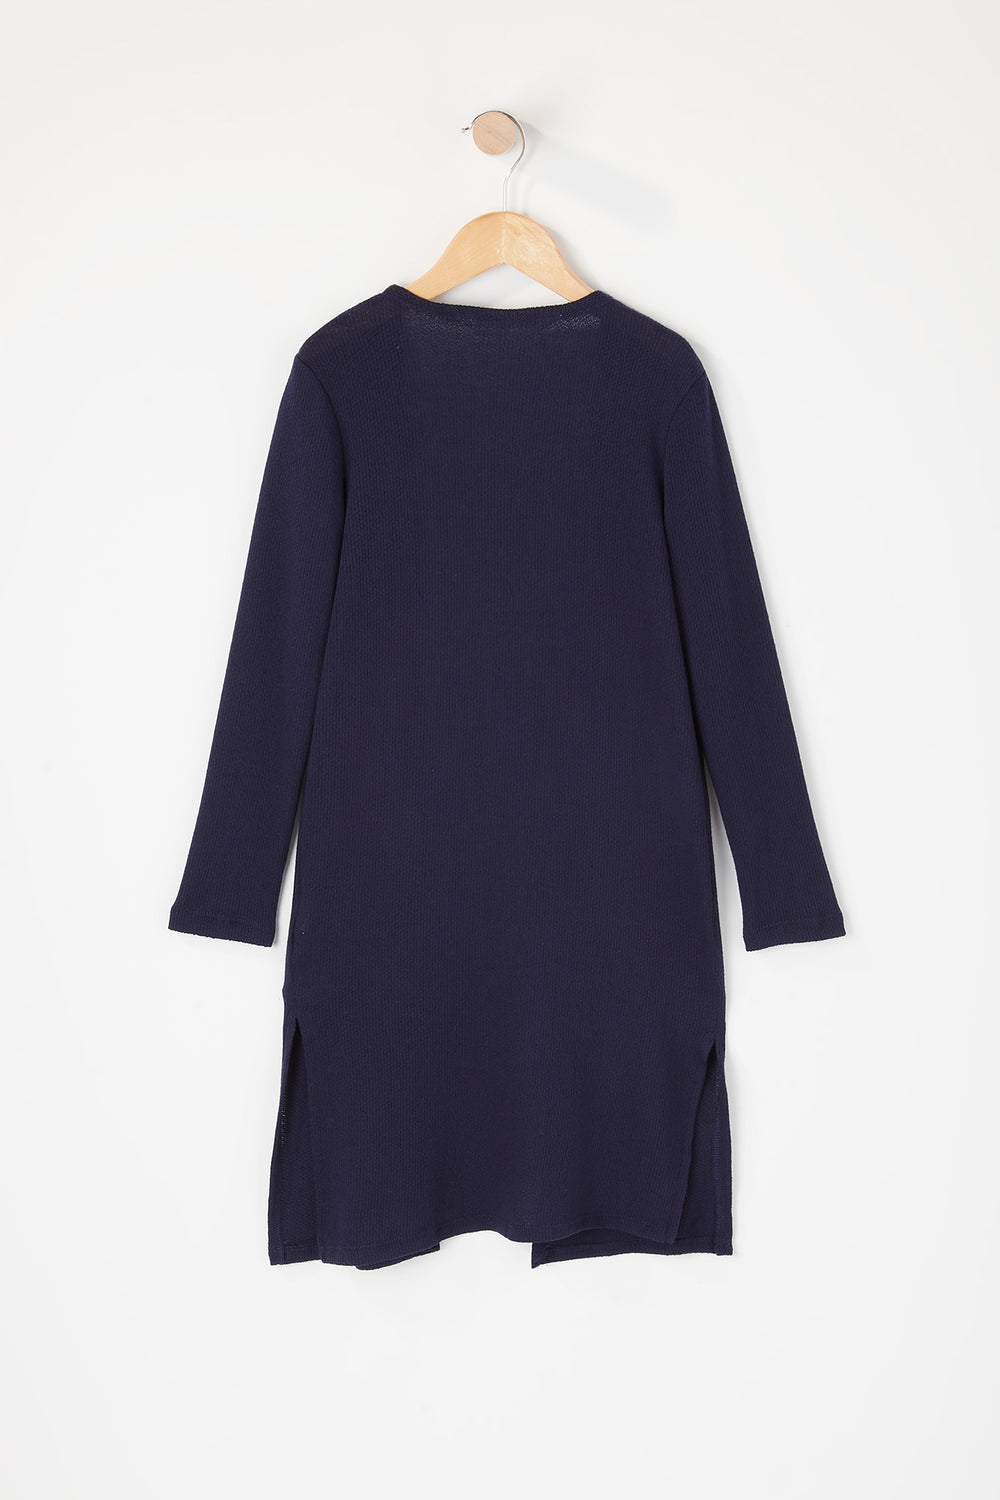 Girls Knit Open Front Cardigan Navy